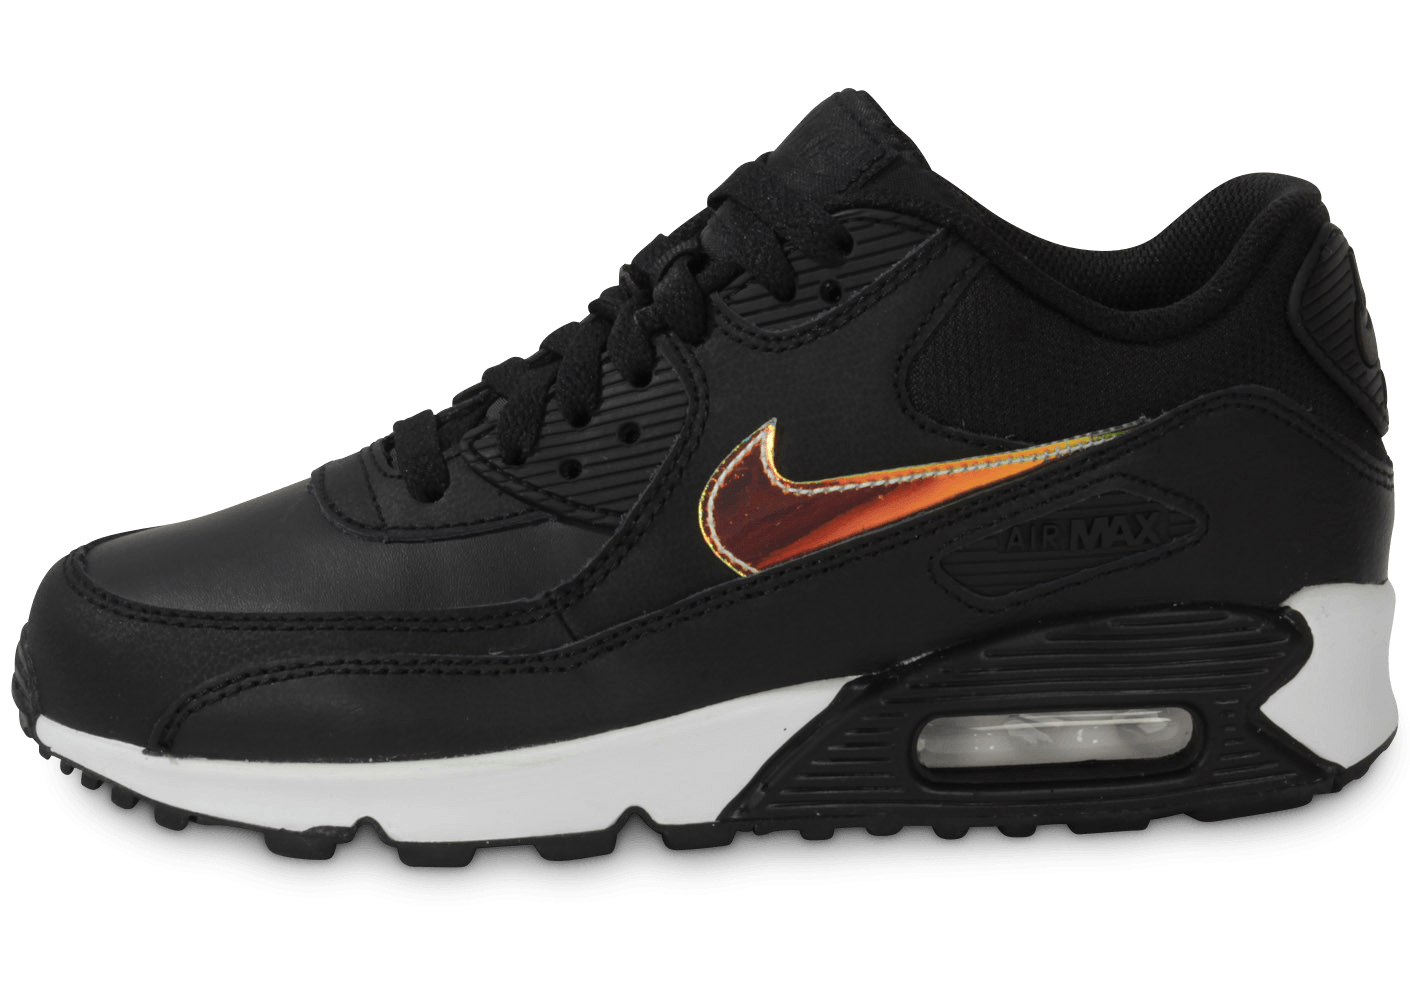 new arrival 9f407 e47ea Nike Air Max 90 Noir Iridescent Junior - Chaussures Chaussures - Chausport